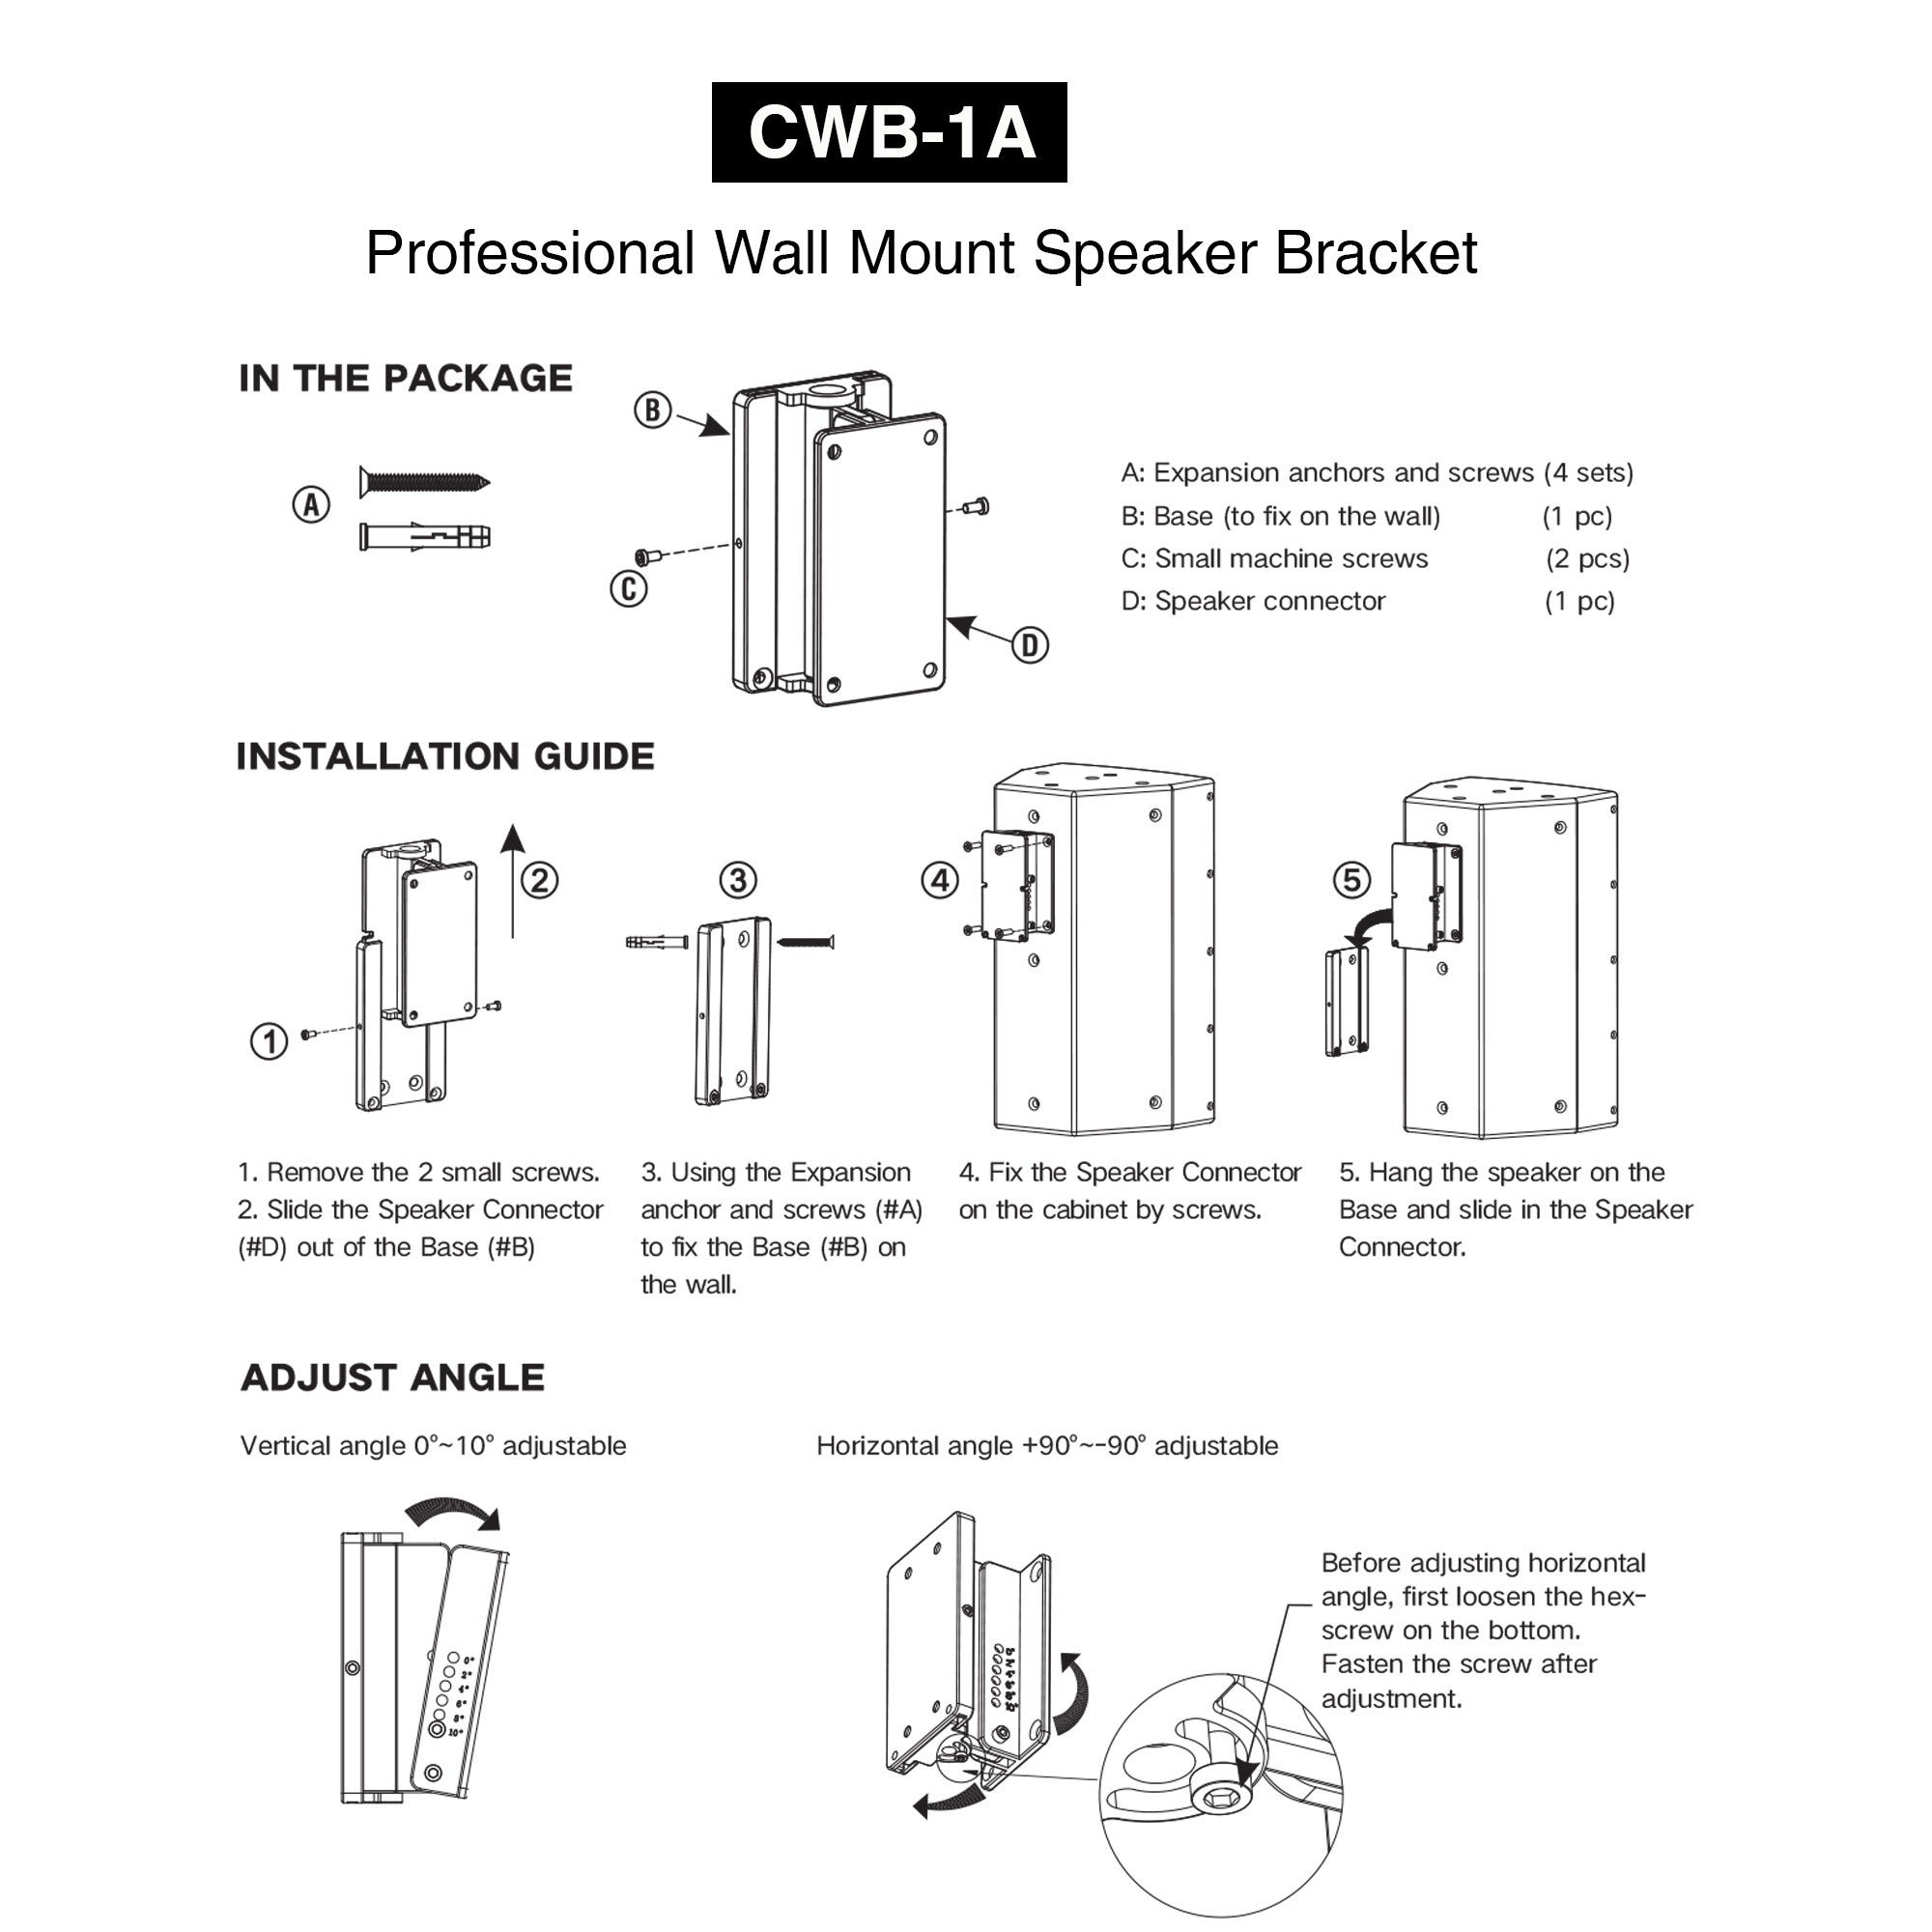 """Sound Town CWB-1A-PAIR 2-Pack Universal Speaker Wall Mount Brackets with Angle Adjustment, 4.25"""" x 2"""" Mounting Template, Black - In the Package, Installation Guide, How to Install, Directions, User Manual, Angle Adjustment Instructions, How to Adjust the Angle"""